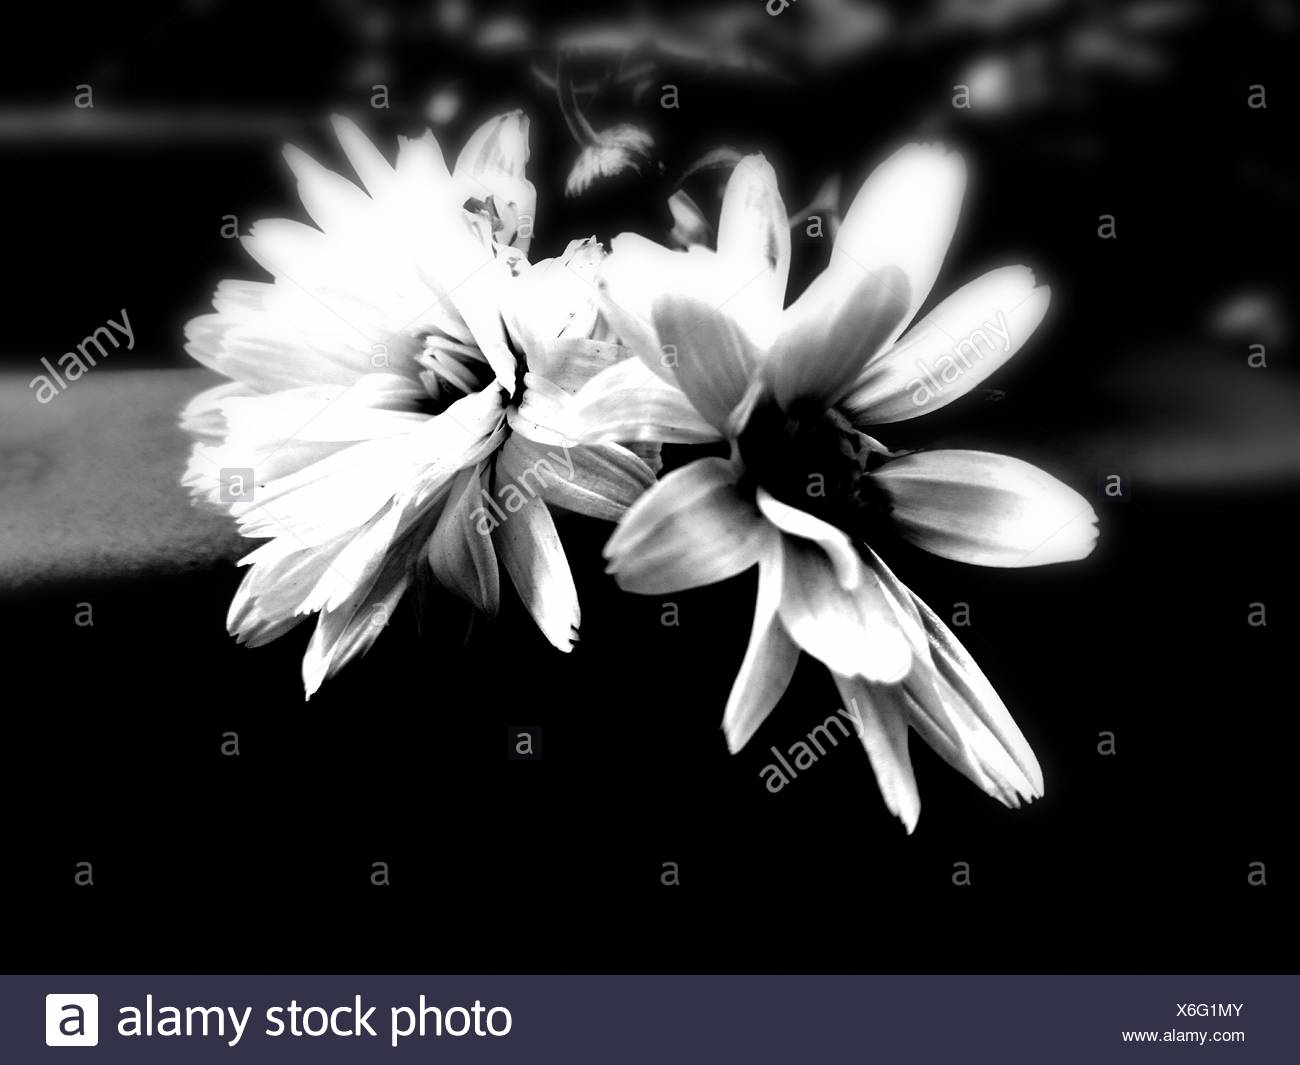 Close-Up Of Flower Against Blurred Background - Stock Image